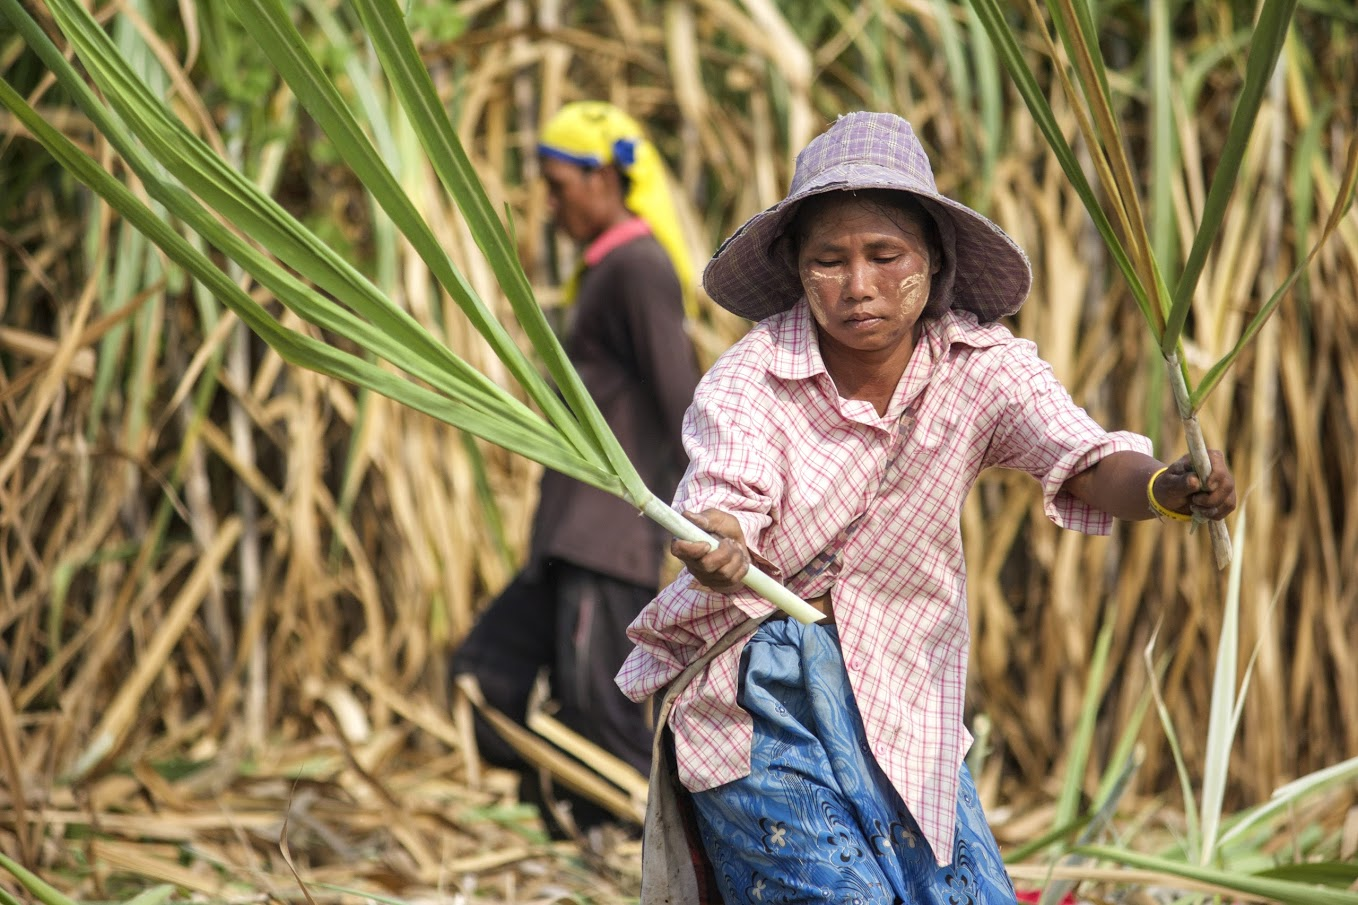 A migrant worker from Myanmar cuts sugar cane in Thailand near the border. There are many tens of millions of workers illegally crossing borders in search of economic opportunity all across the Asia-Pacific region. Their migrations may carry malaria into receptive but malaria-free areas where elimination had been achieved.